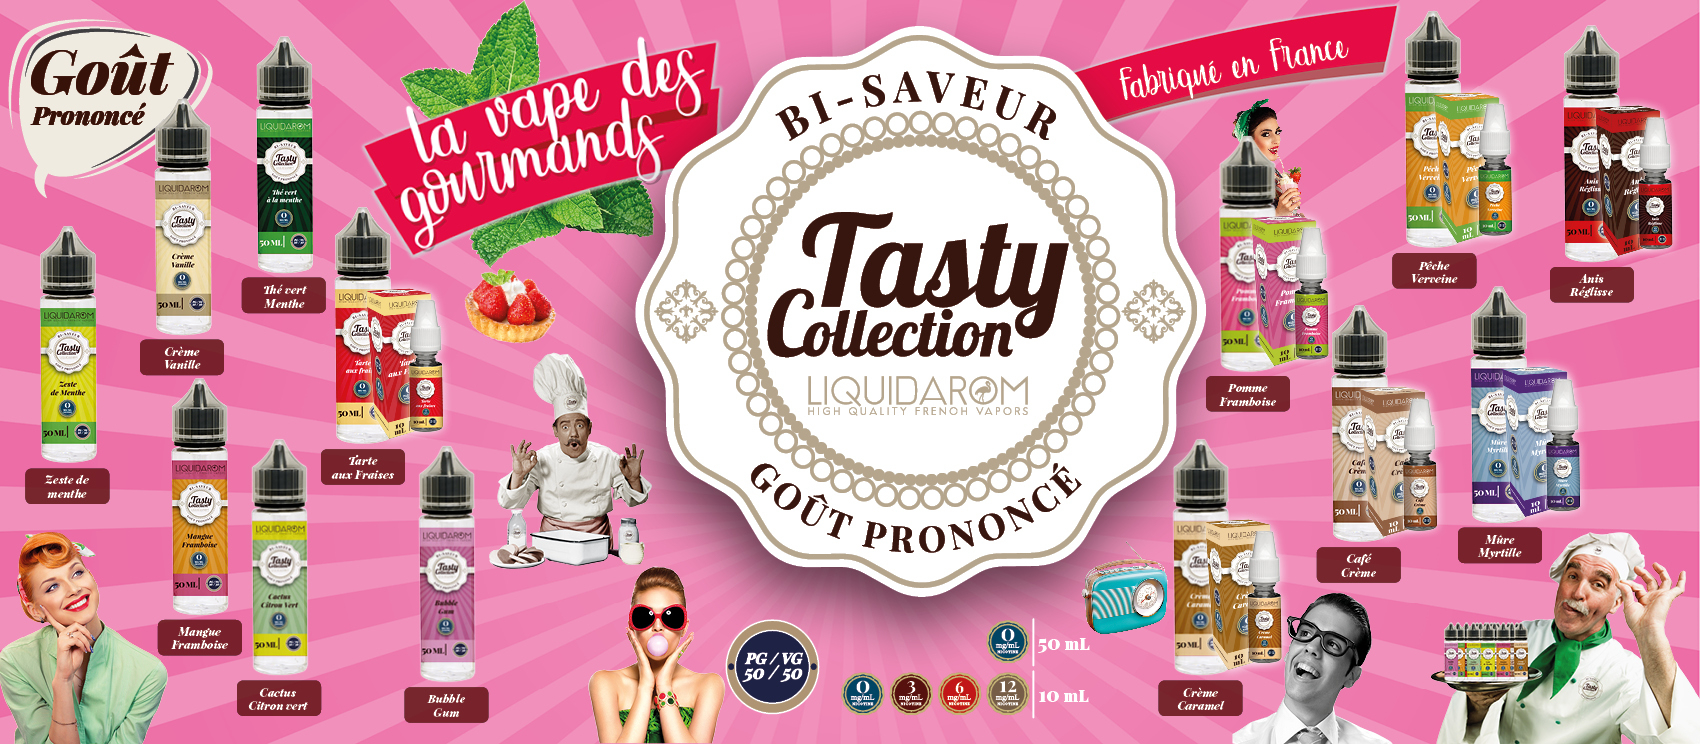 Gamme Tasty